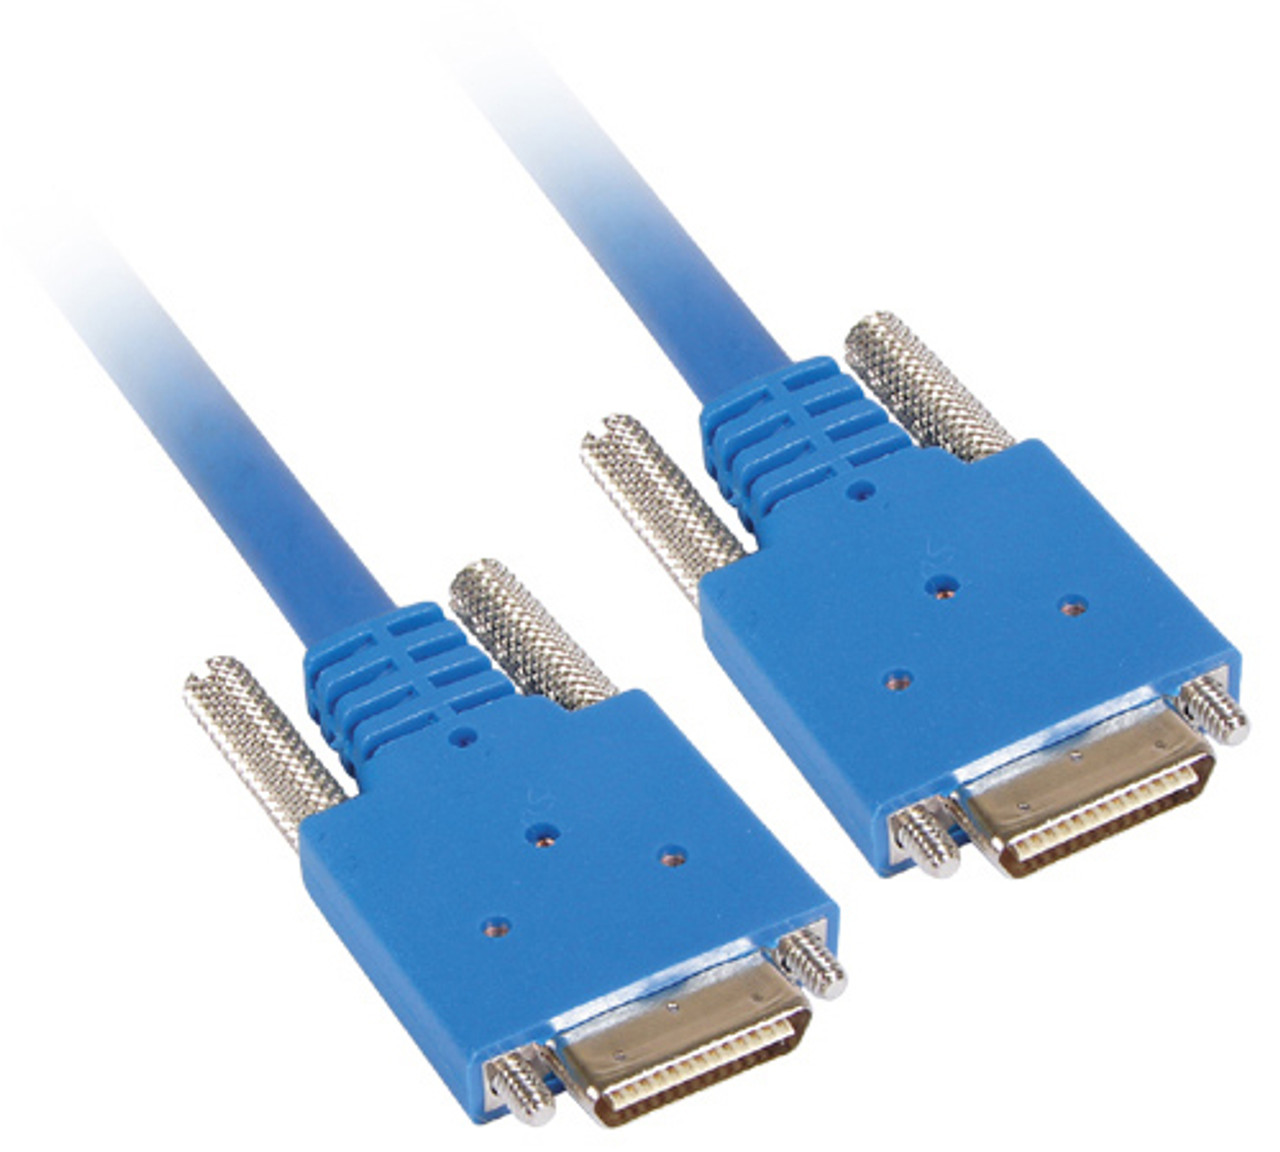 Product image for 2M SS26 To SS26 Crossover Cable ( X21 ) | CX Computer Superstore